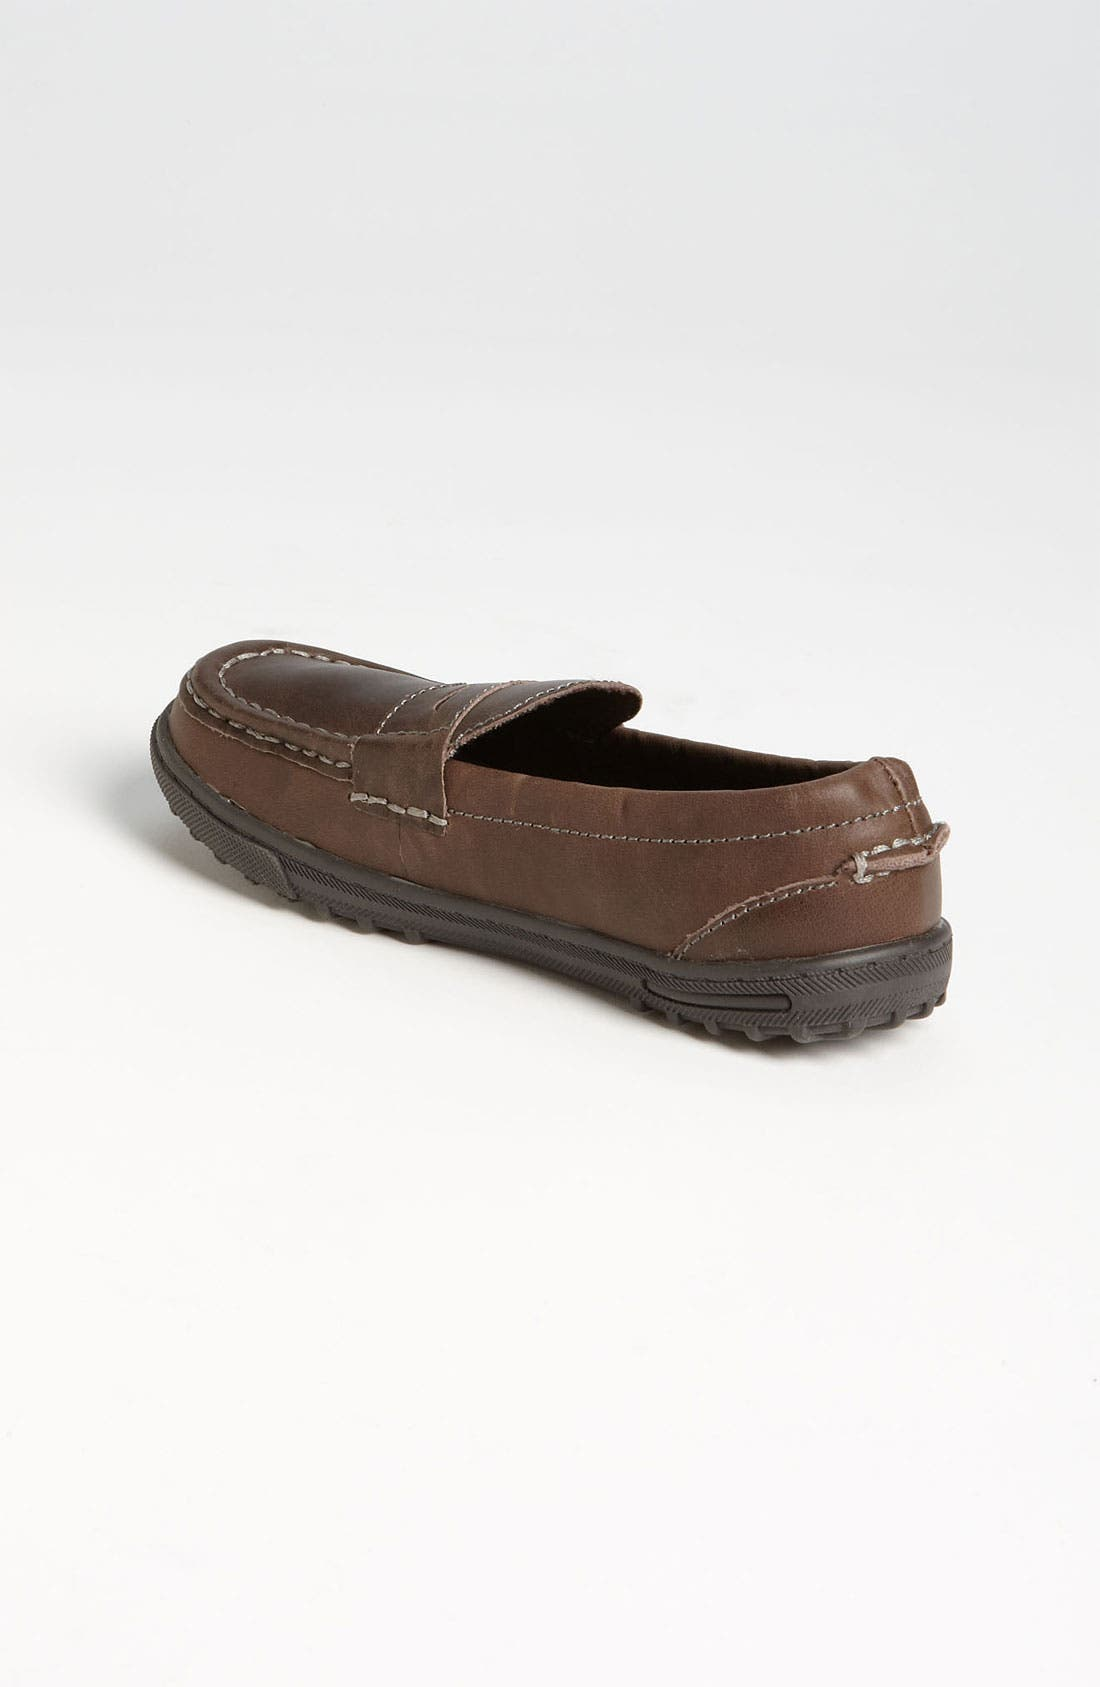 Alternate Image 2  - Cole Haan 'Air Sail' Loafer (Toddler, Little Kid & Big Kid)